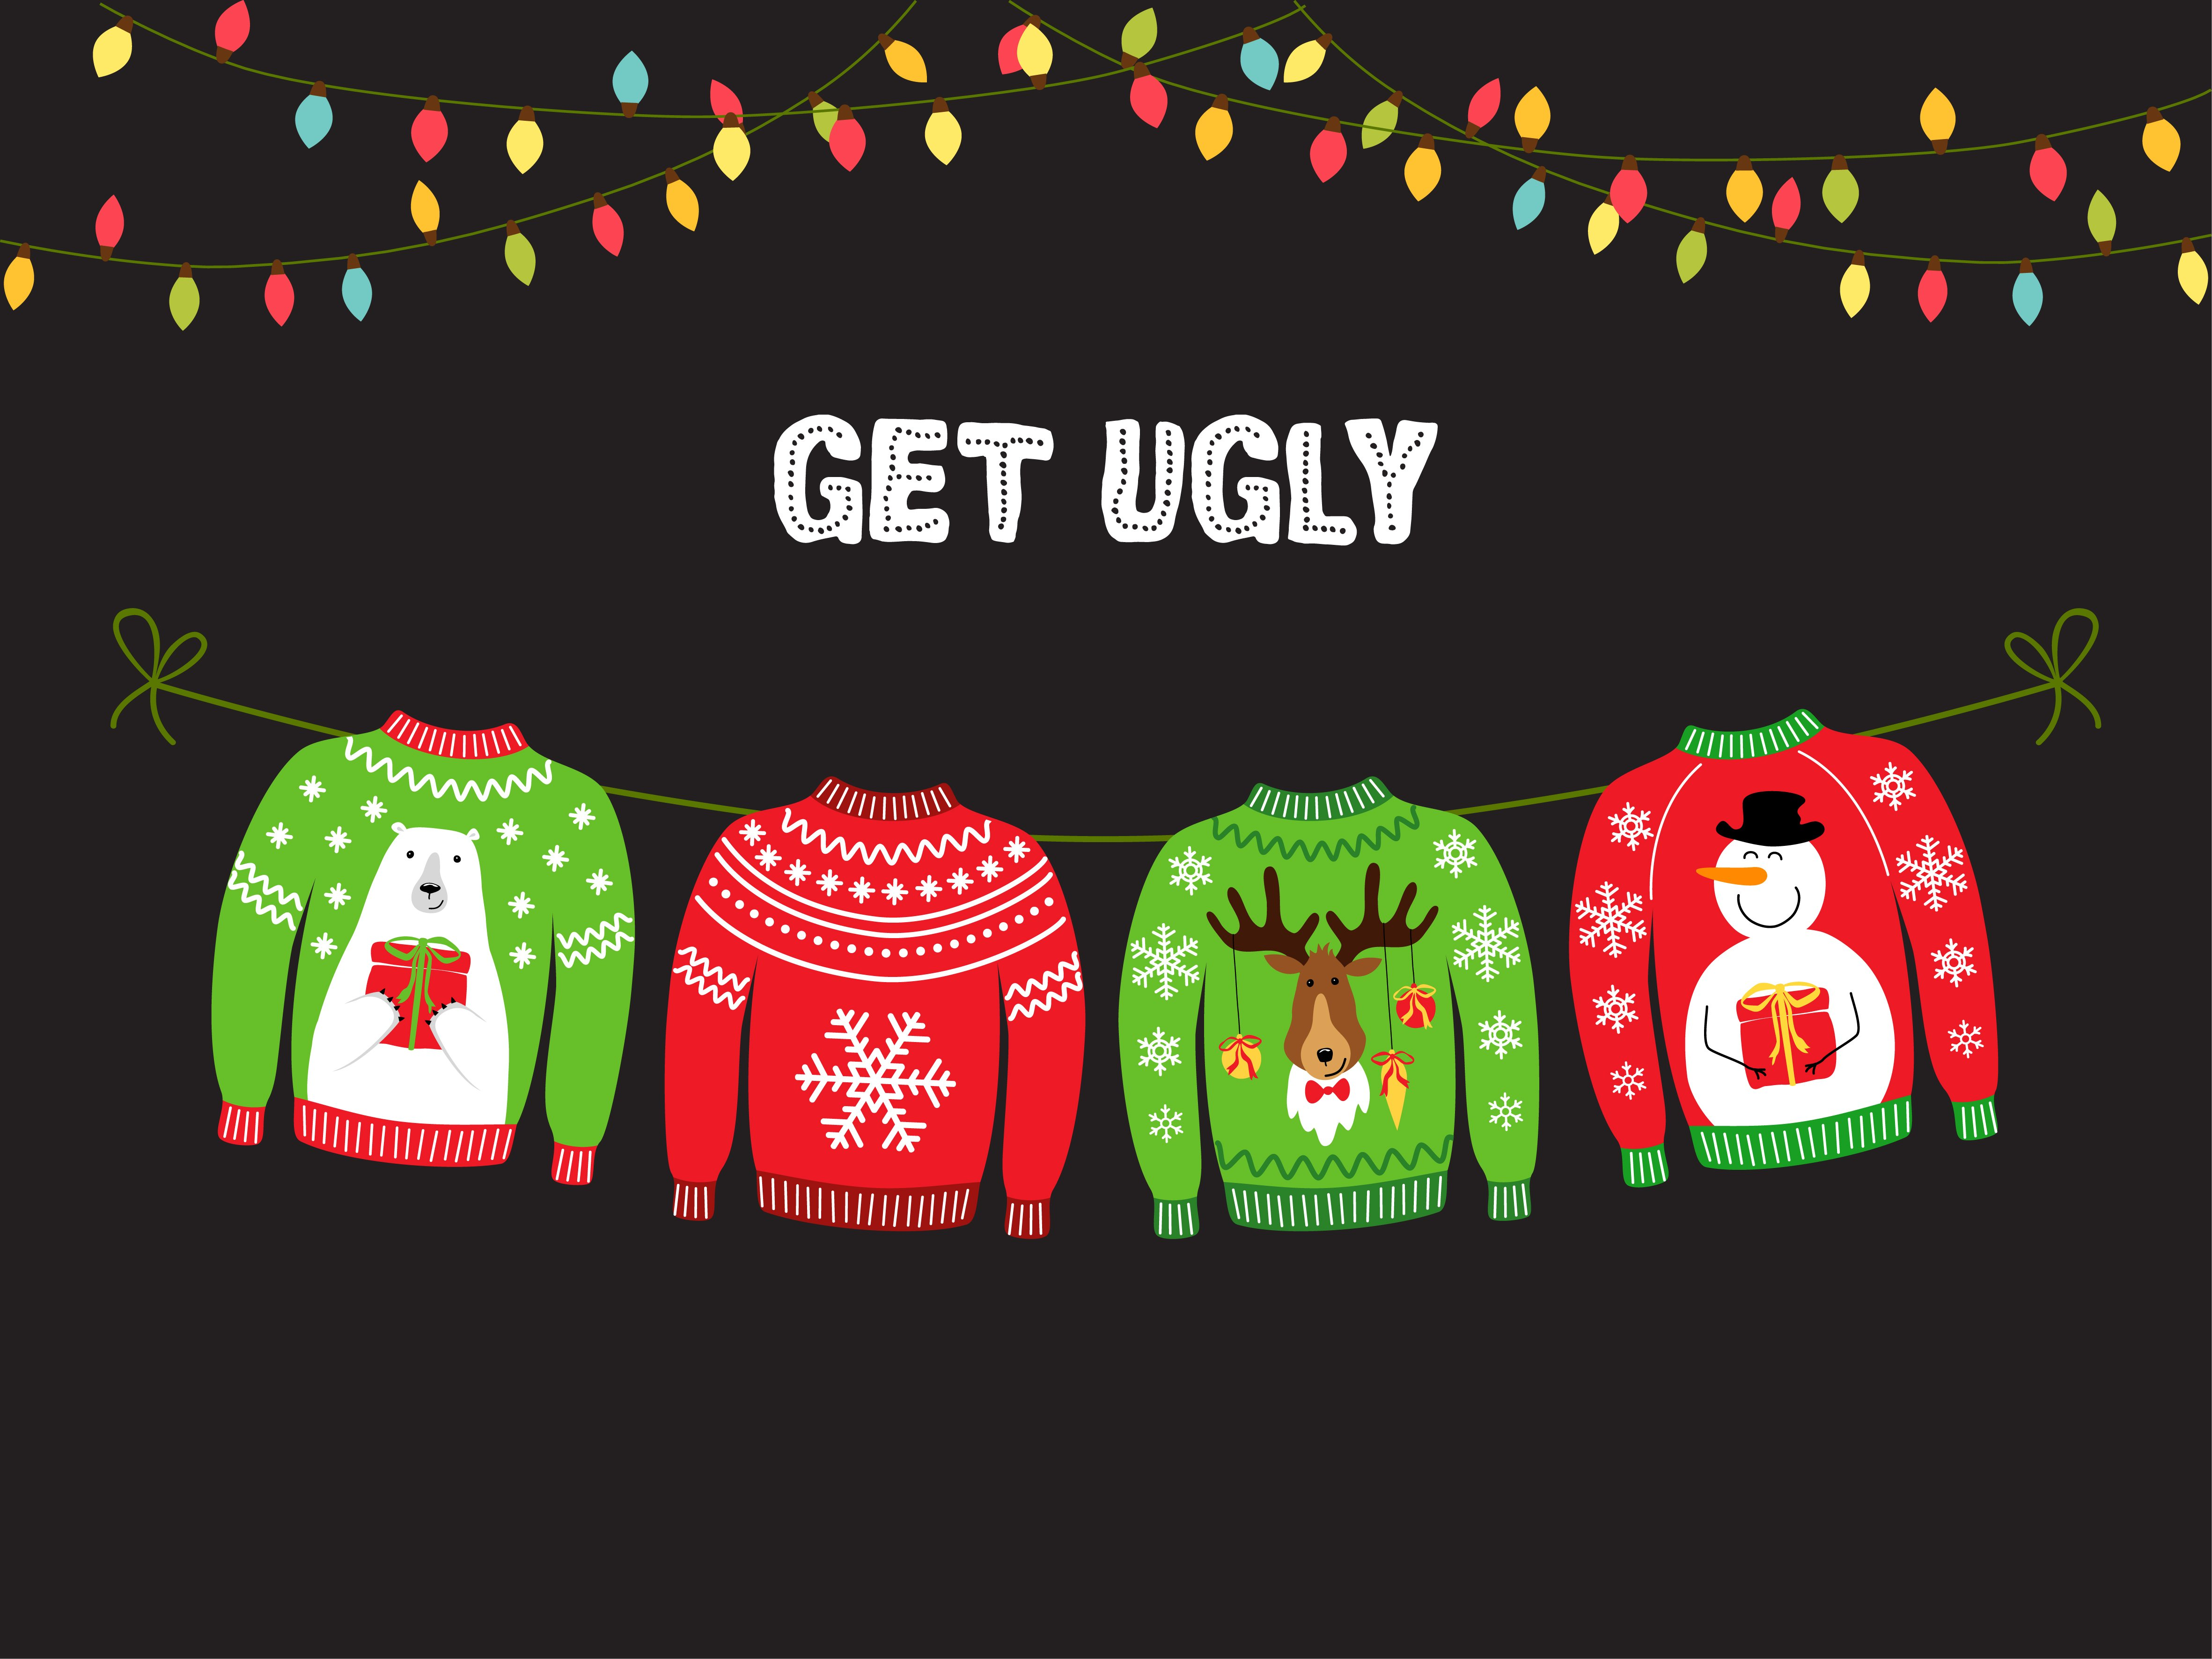 Christmas sprit means Ugly Christmas Sweaters for some celebs.   Photo: Shutterstock